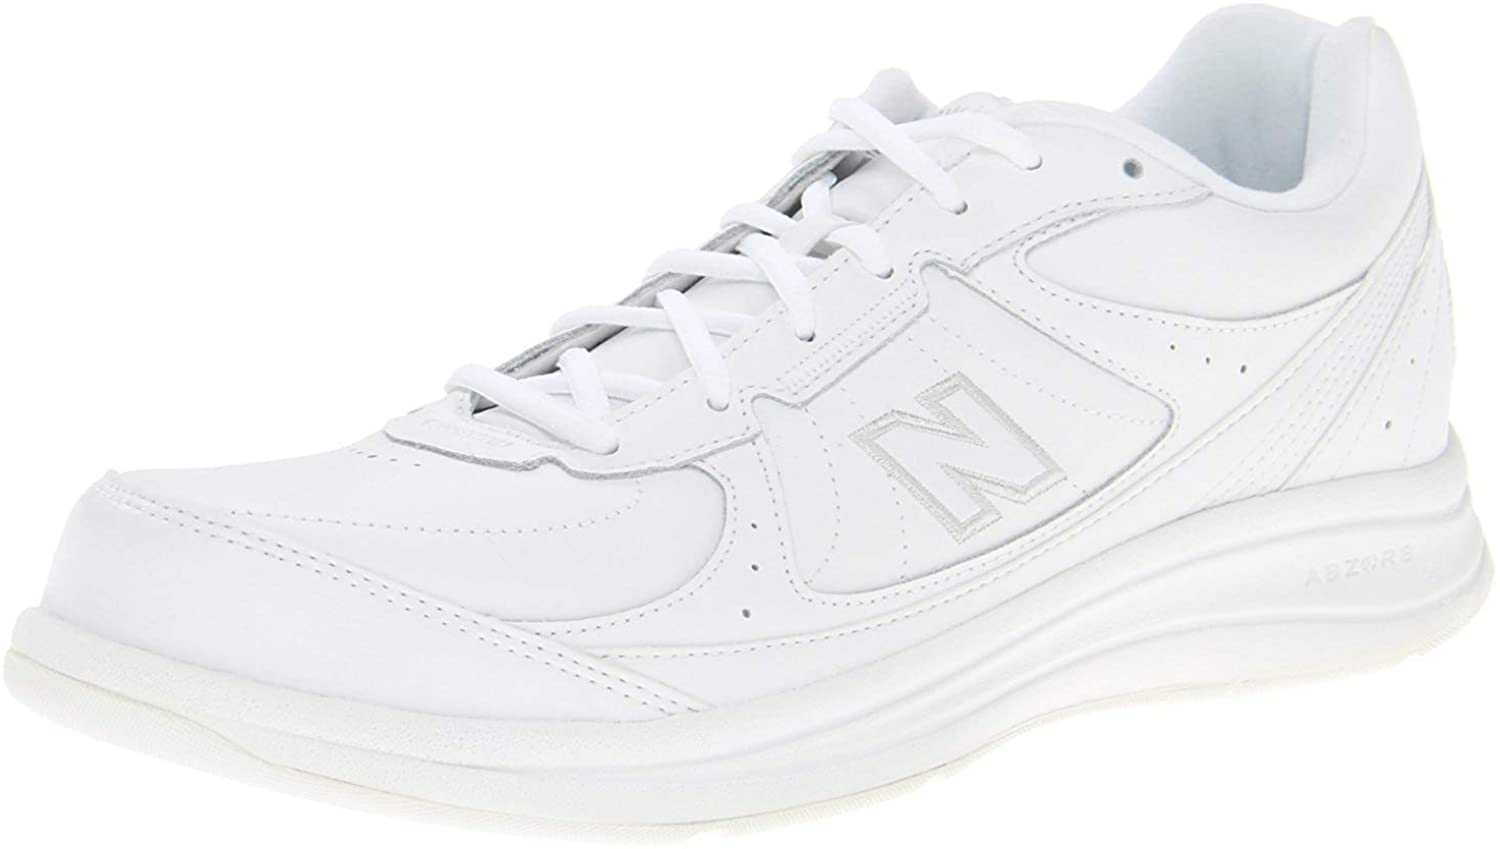 New Balance Men's 577 V1 Lace-up Walking Shoe